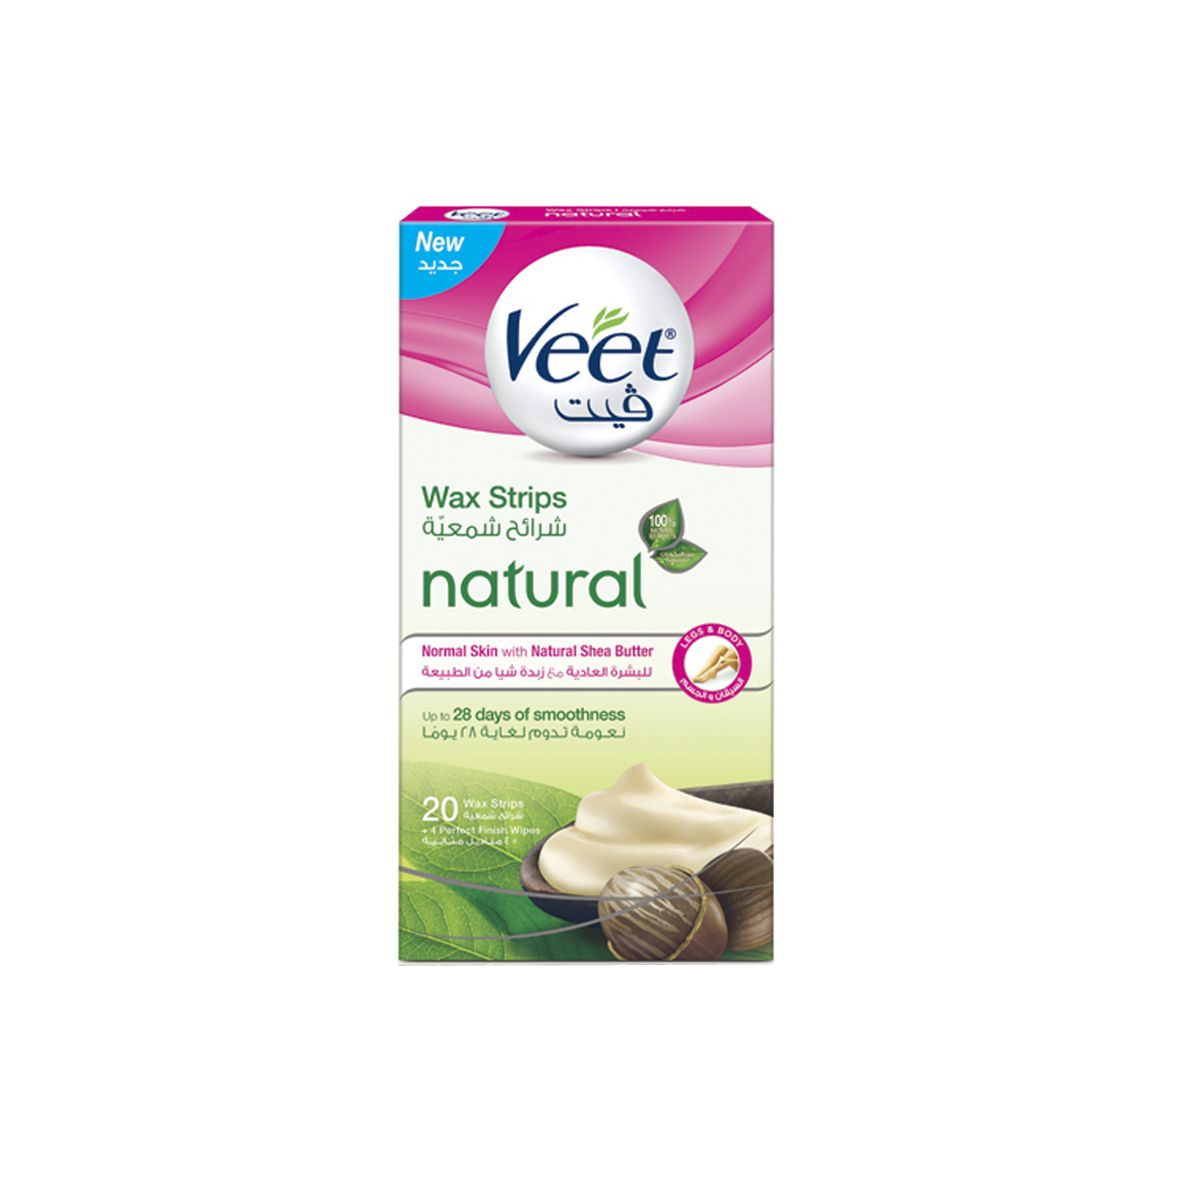 Veet Hair Remover Legs Cold Wax Strips With Shea Butter Pack Of 20 Strips